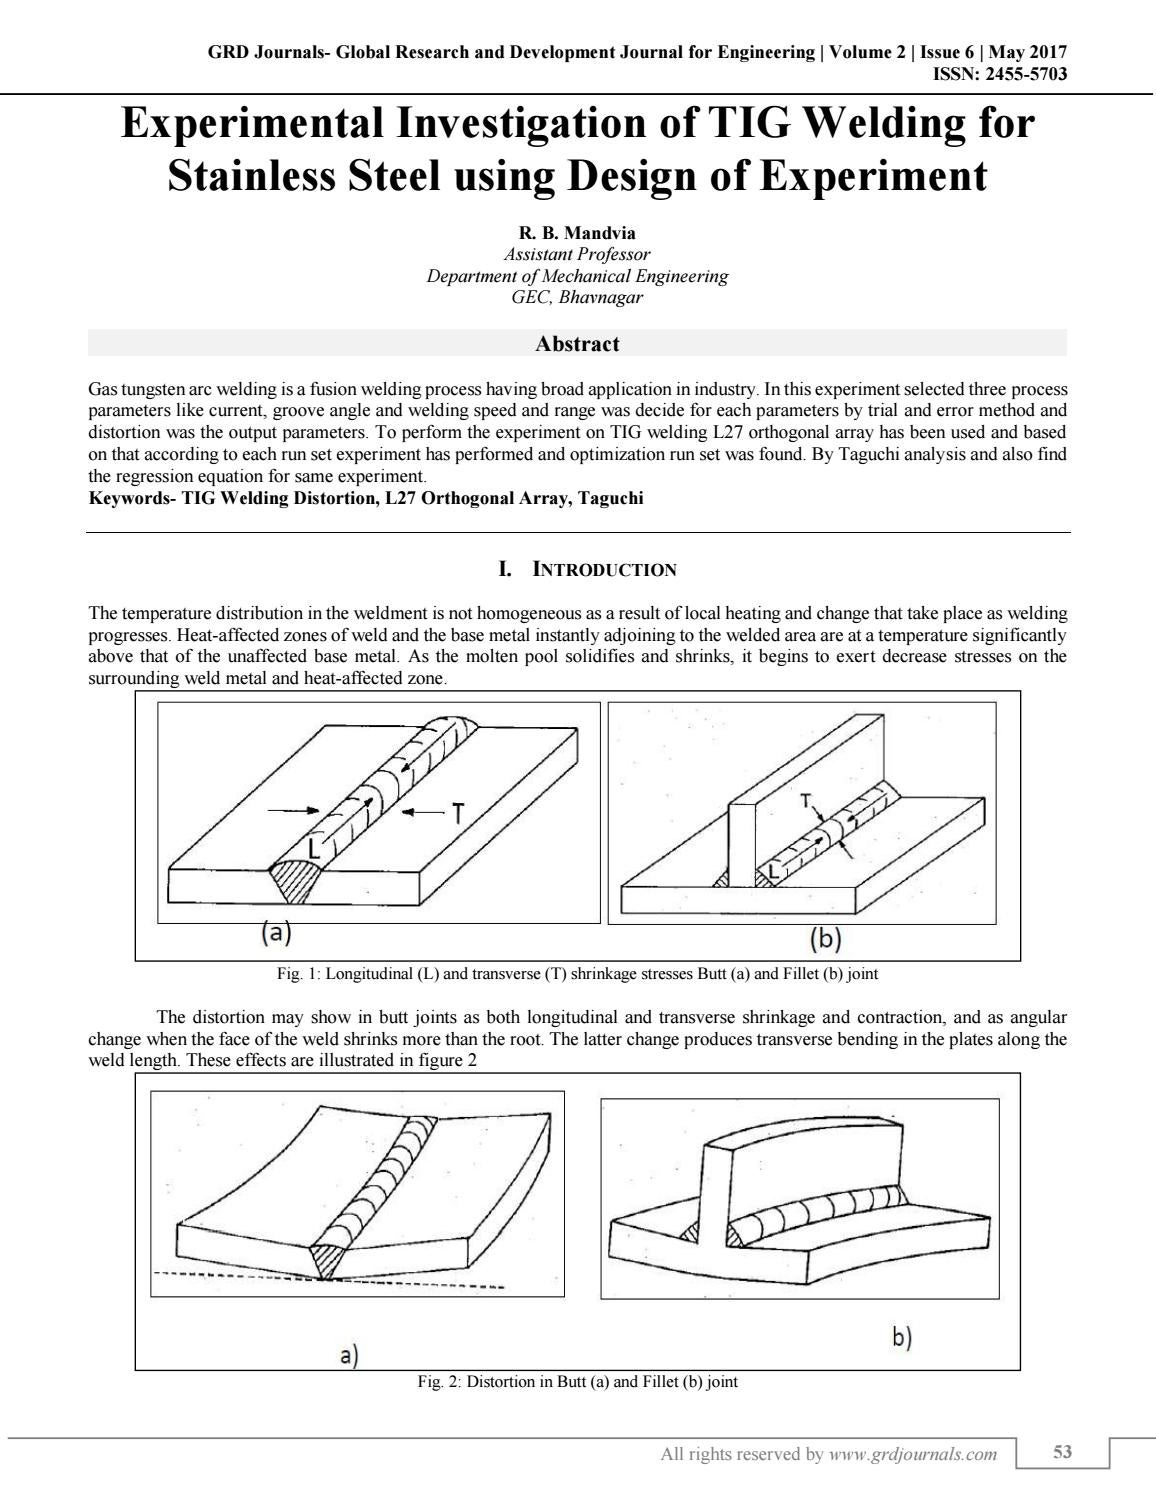 hight resolution of experimental investigation of tig welding for stainless steel using design of experiment by grd journals issuu